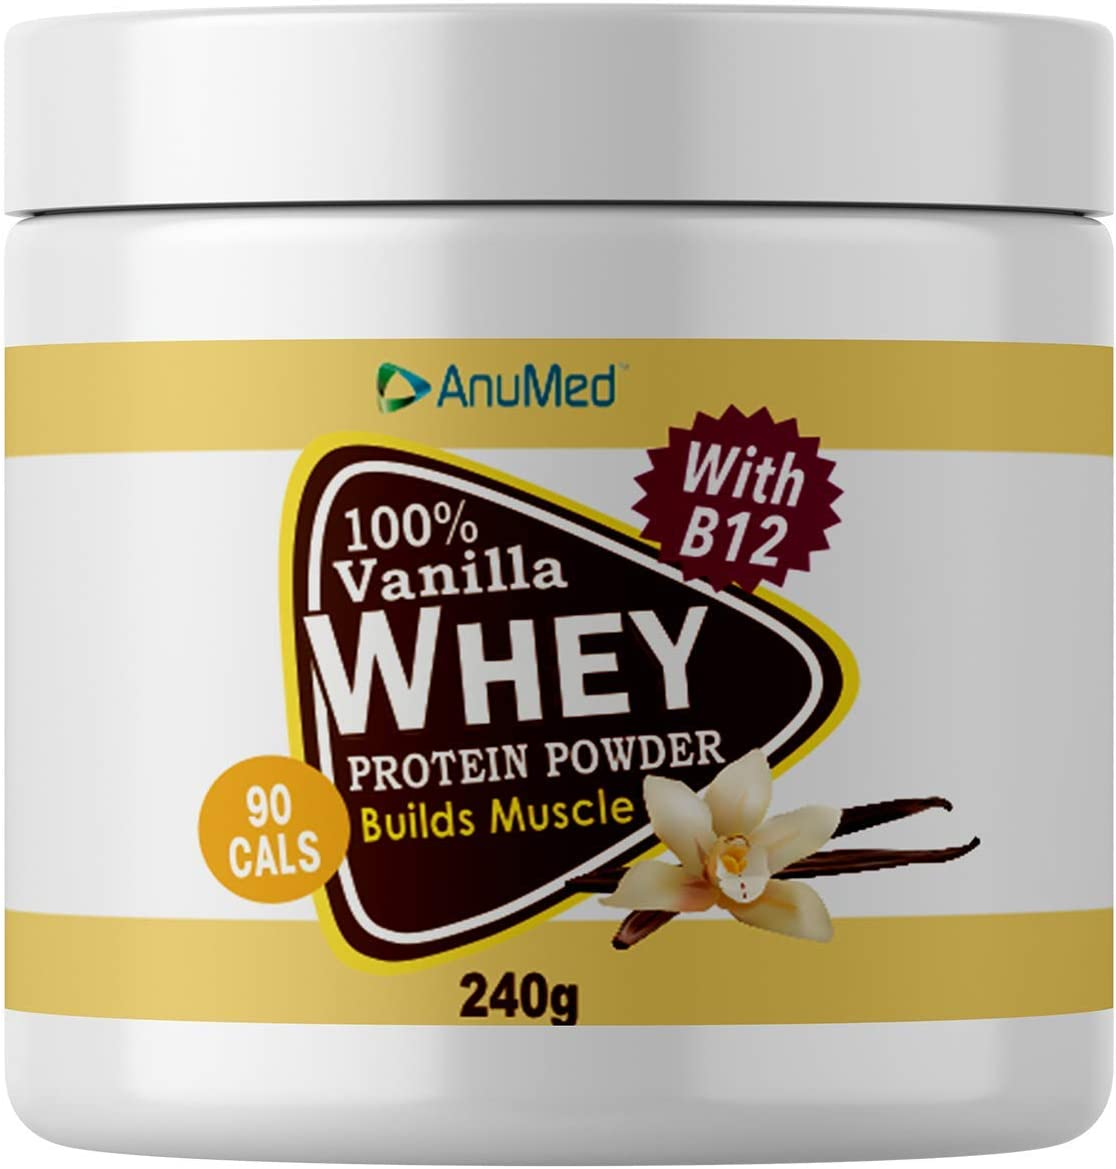 Anumed 100% Whey Vanilla Protein Shake. Isolate. Max 54% Free Shipping New OFF Nutritional Bes